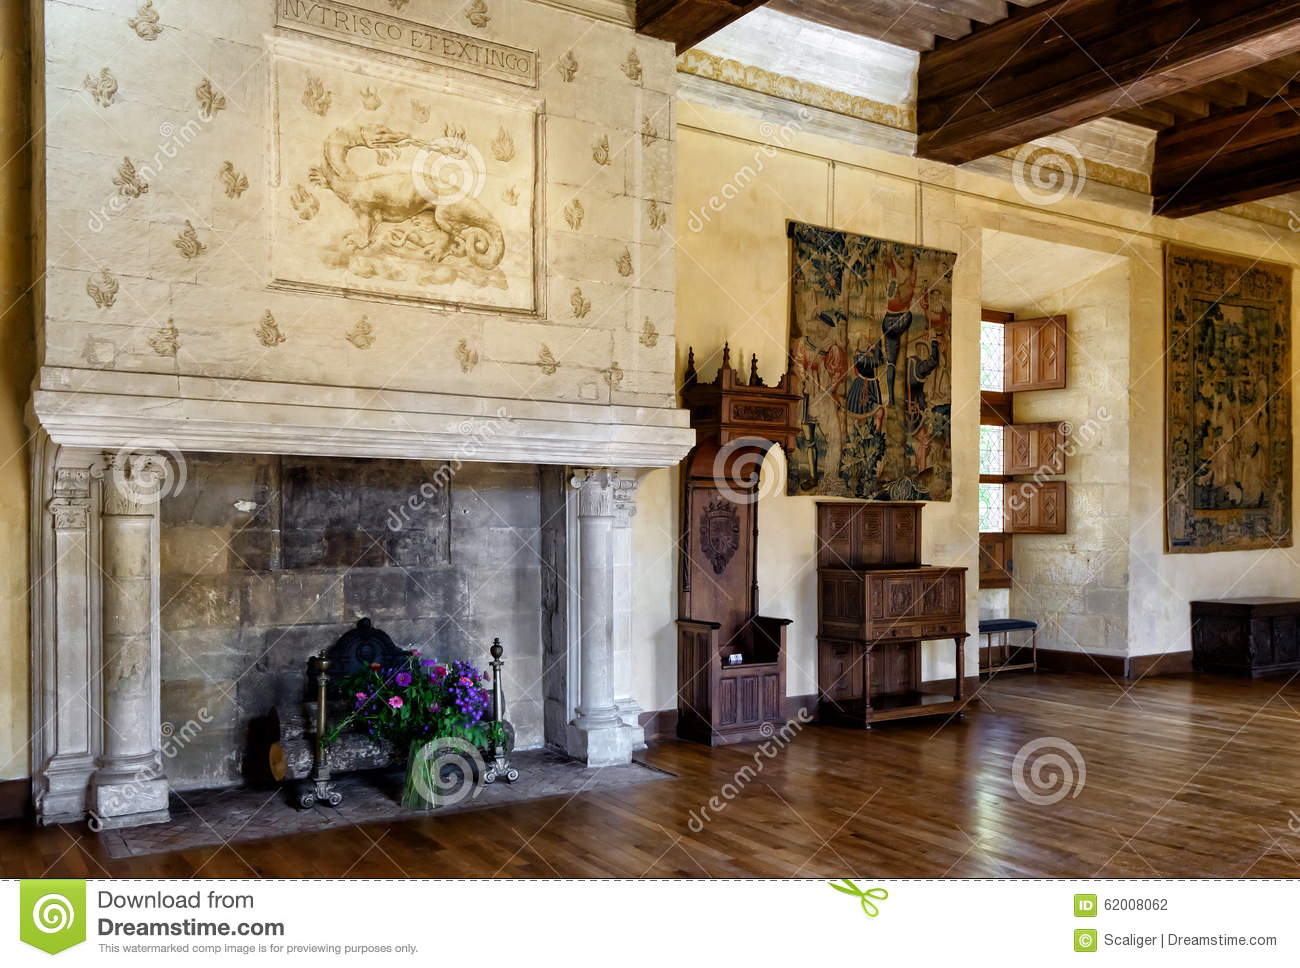 Chateau de azay le rideau int rieur france photographie for Rideau interieur